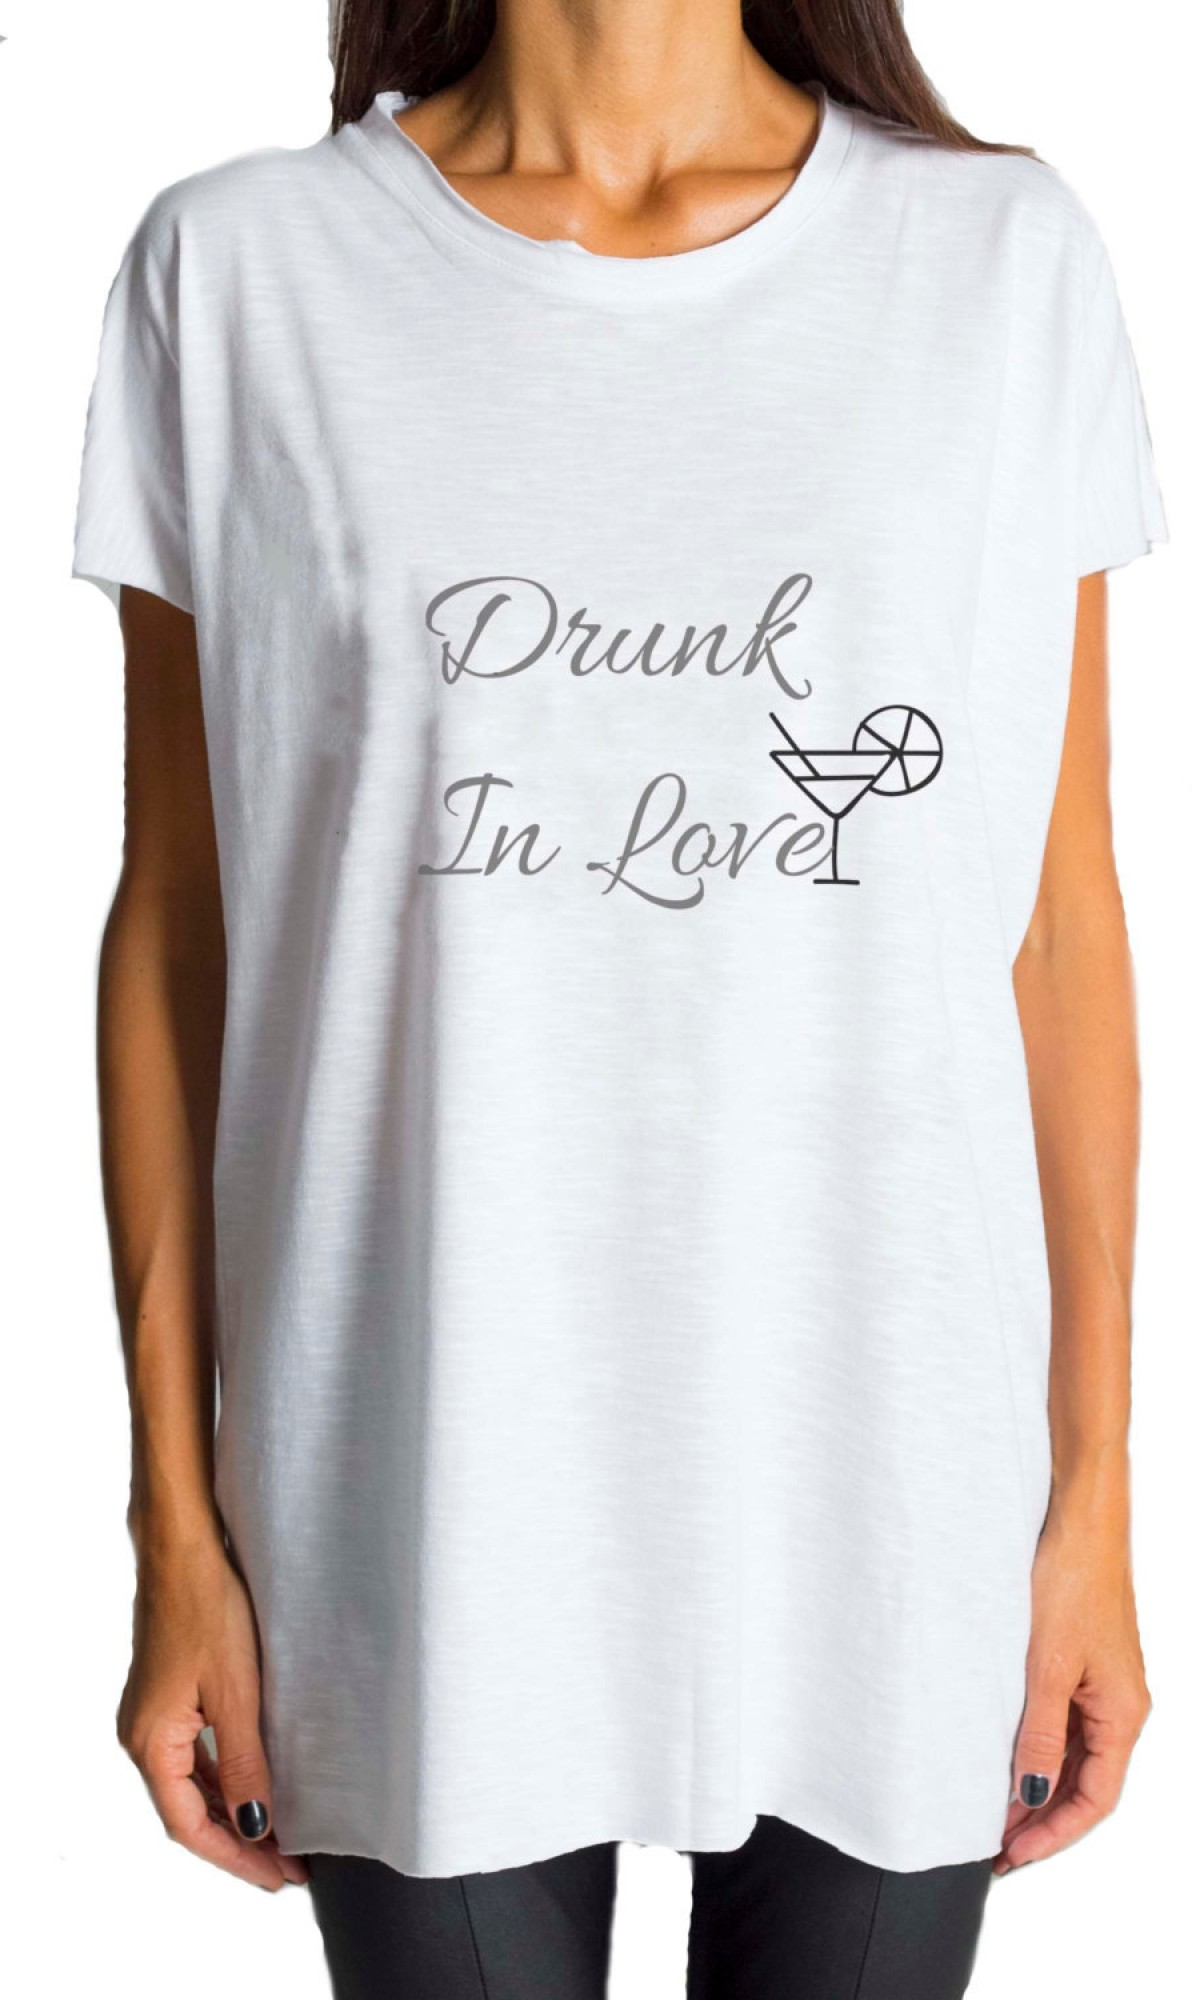 Printees - White T-shirt Drunk in Love A224000125